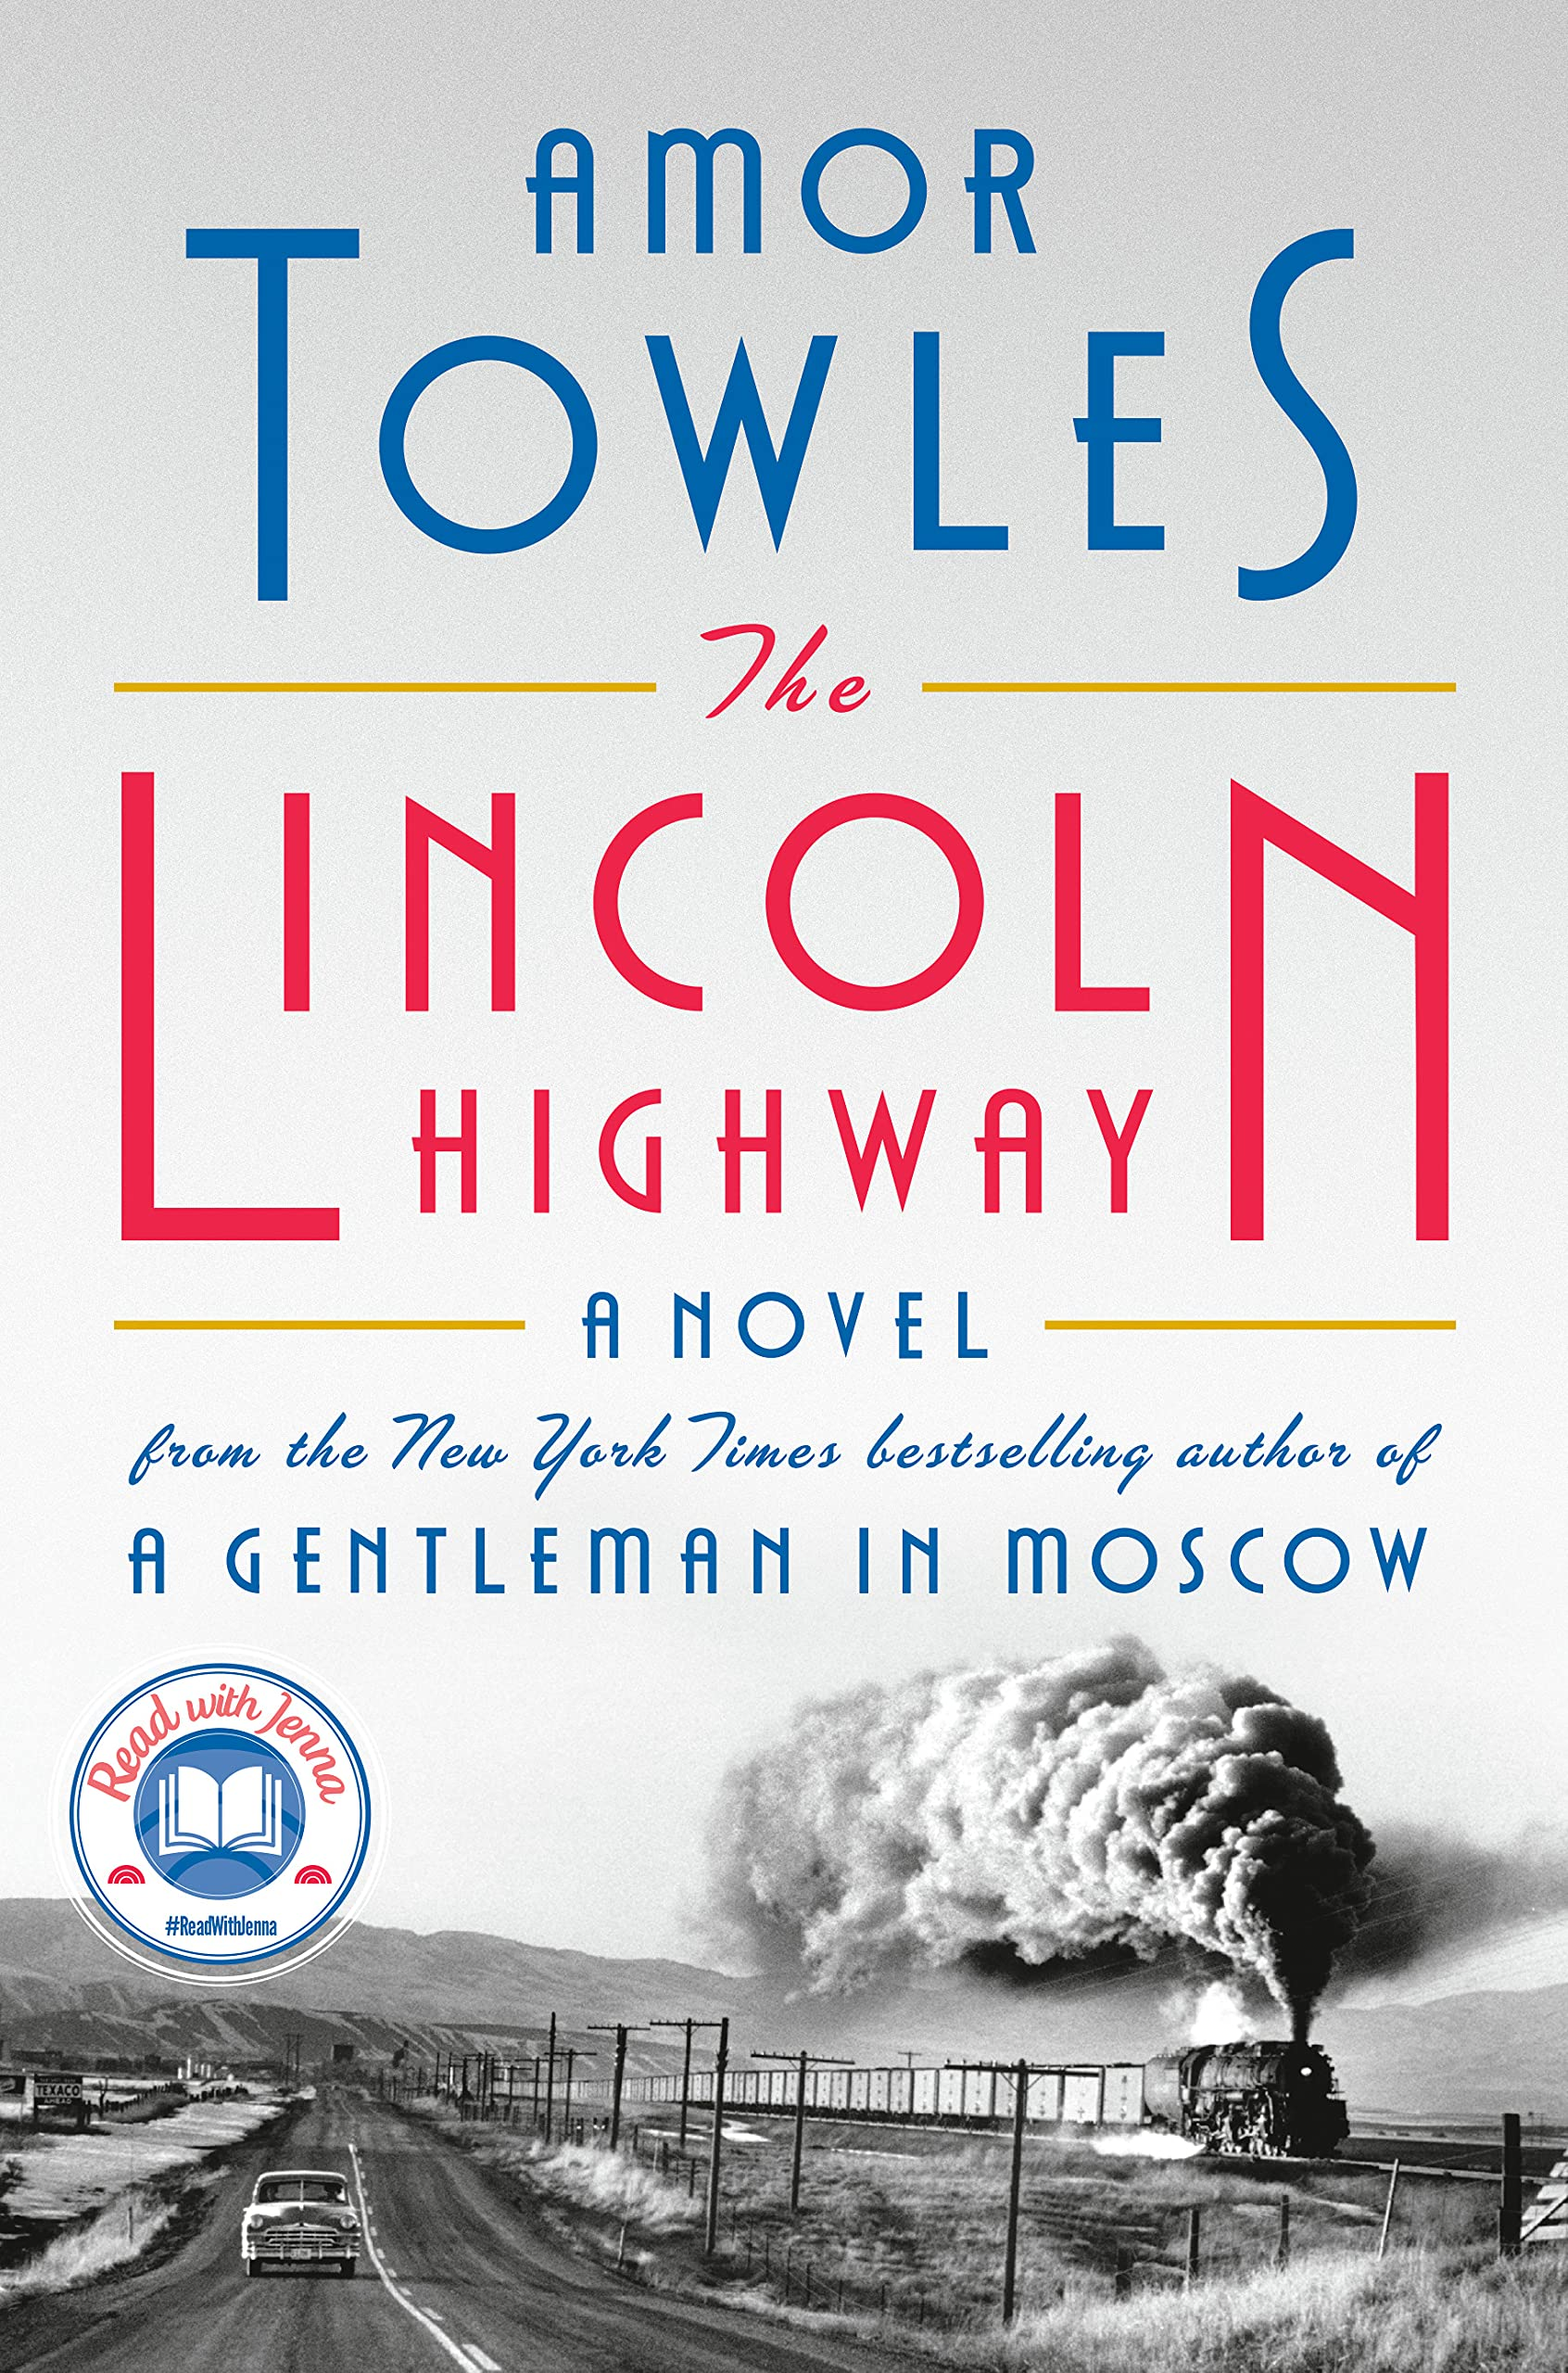 Cover image of The Lincoln Highway by Amor Towles